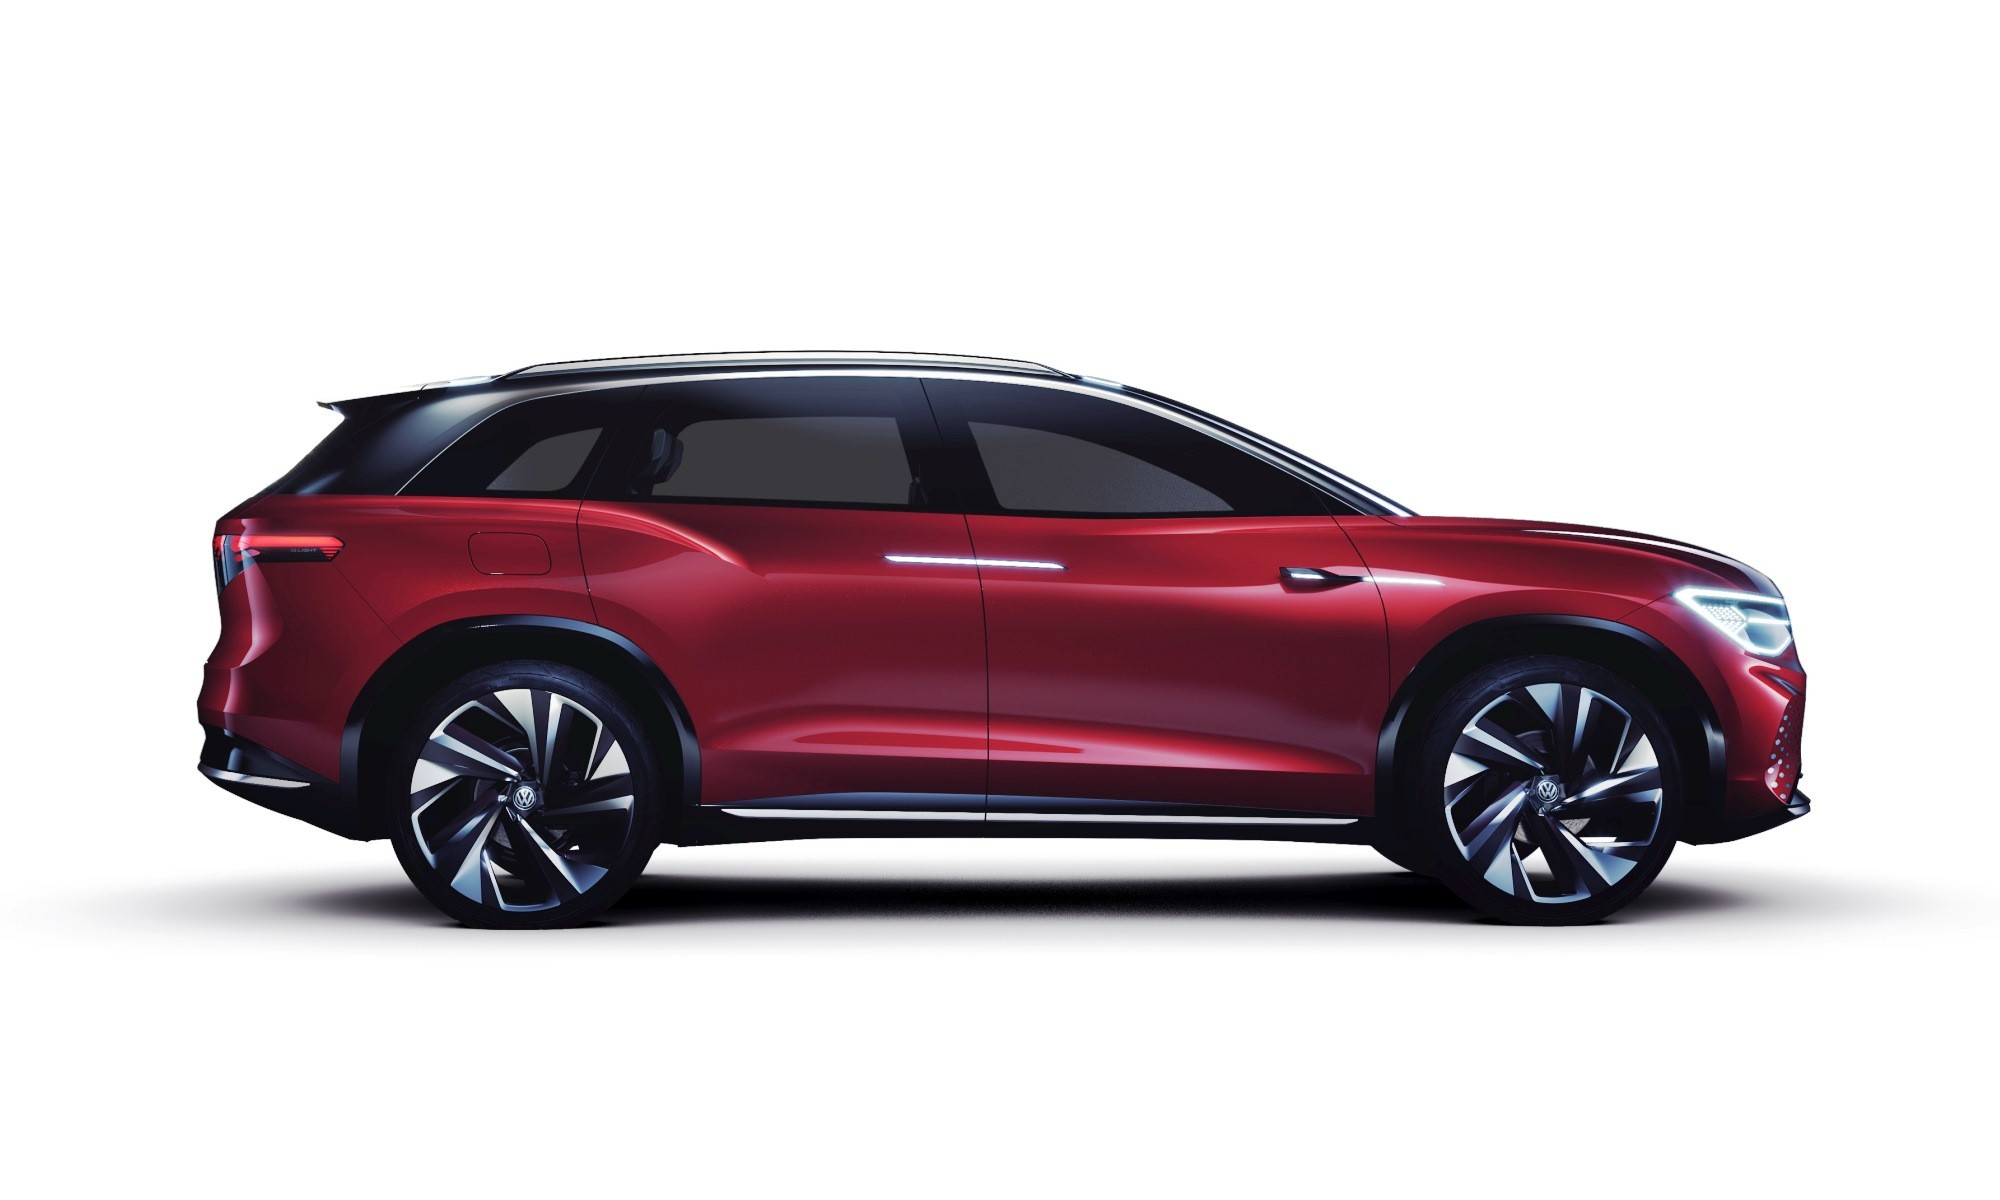 VW ID Roomzz Concept profile